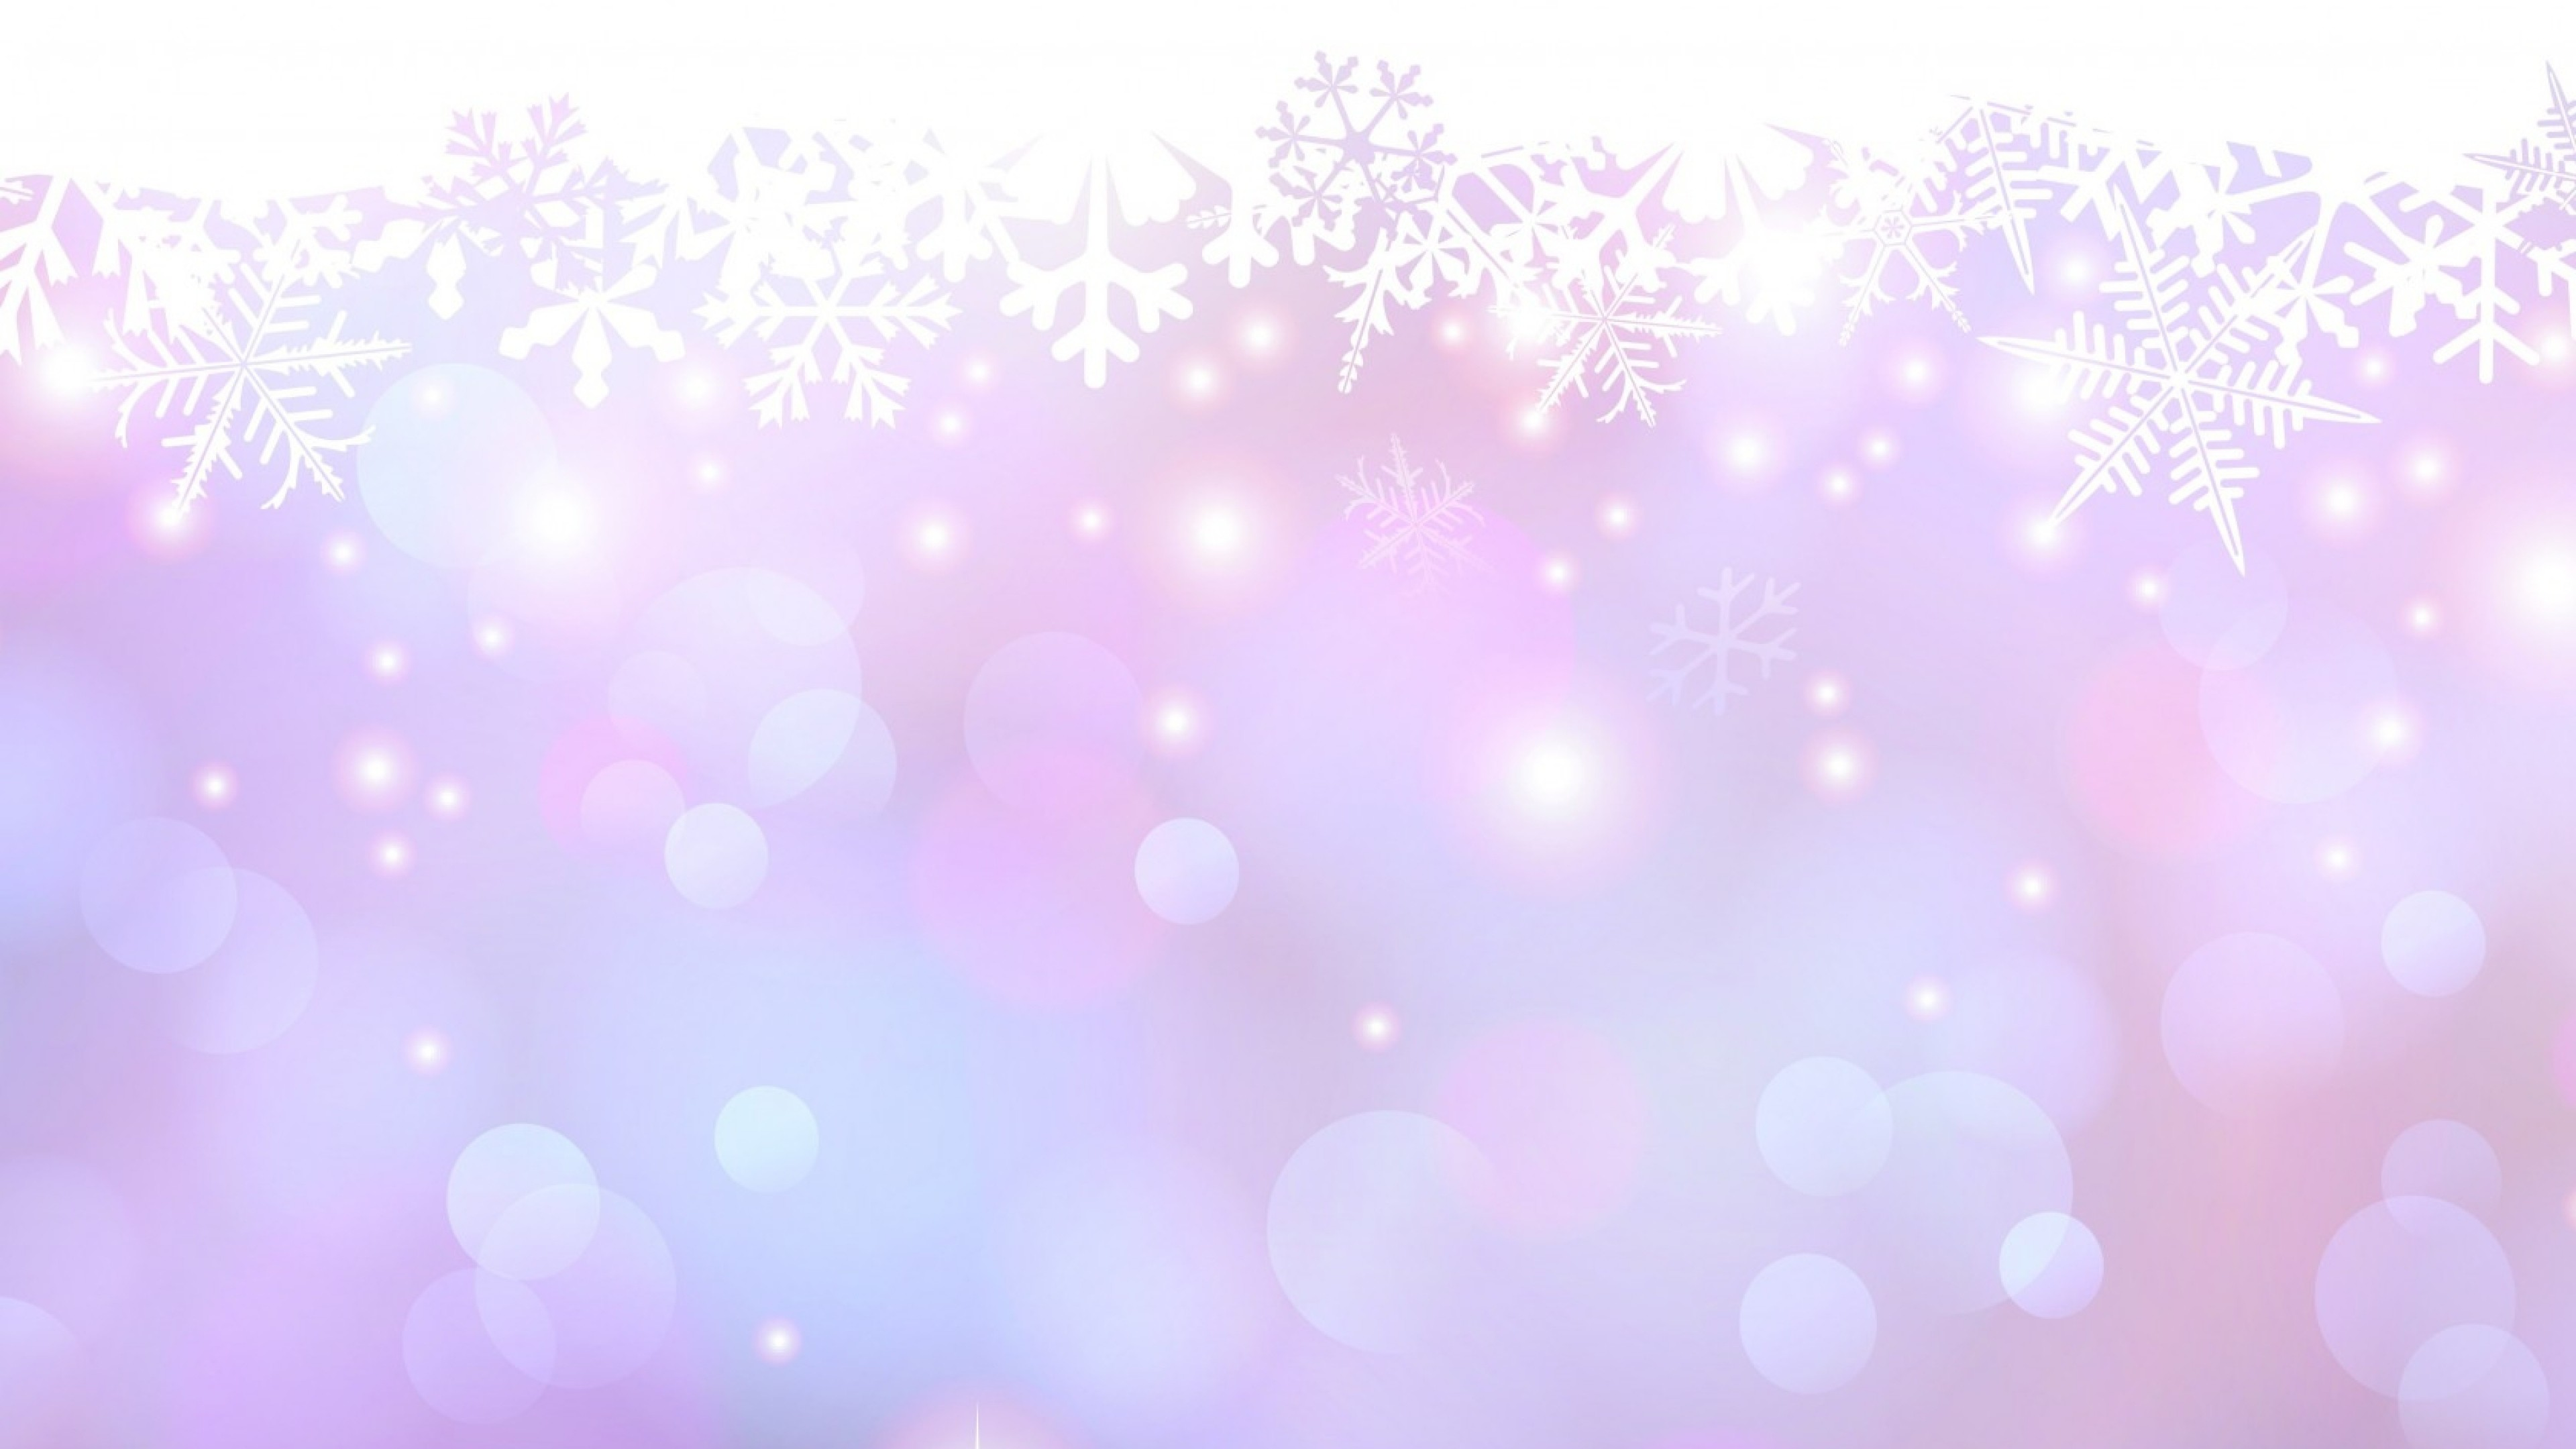 3840x2160 Bright-snowflakes-wallpaper-hd-wallpapers